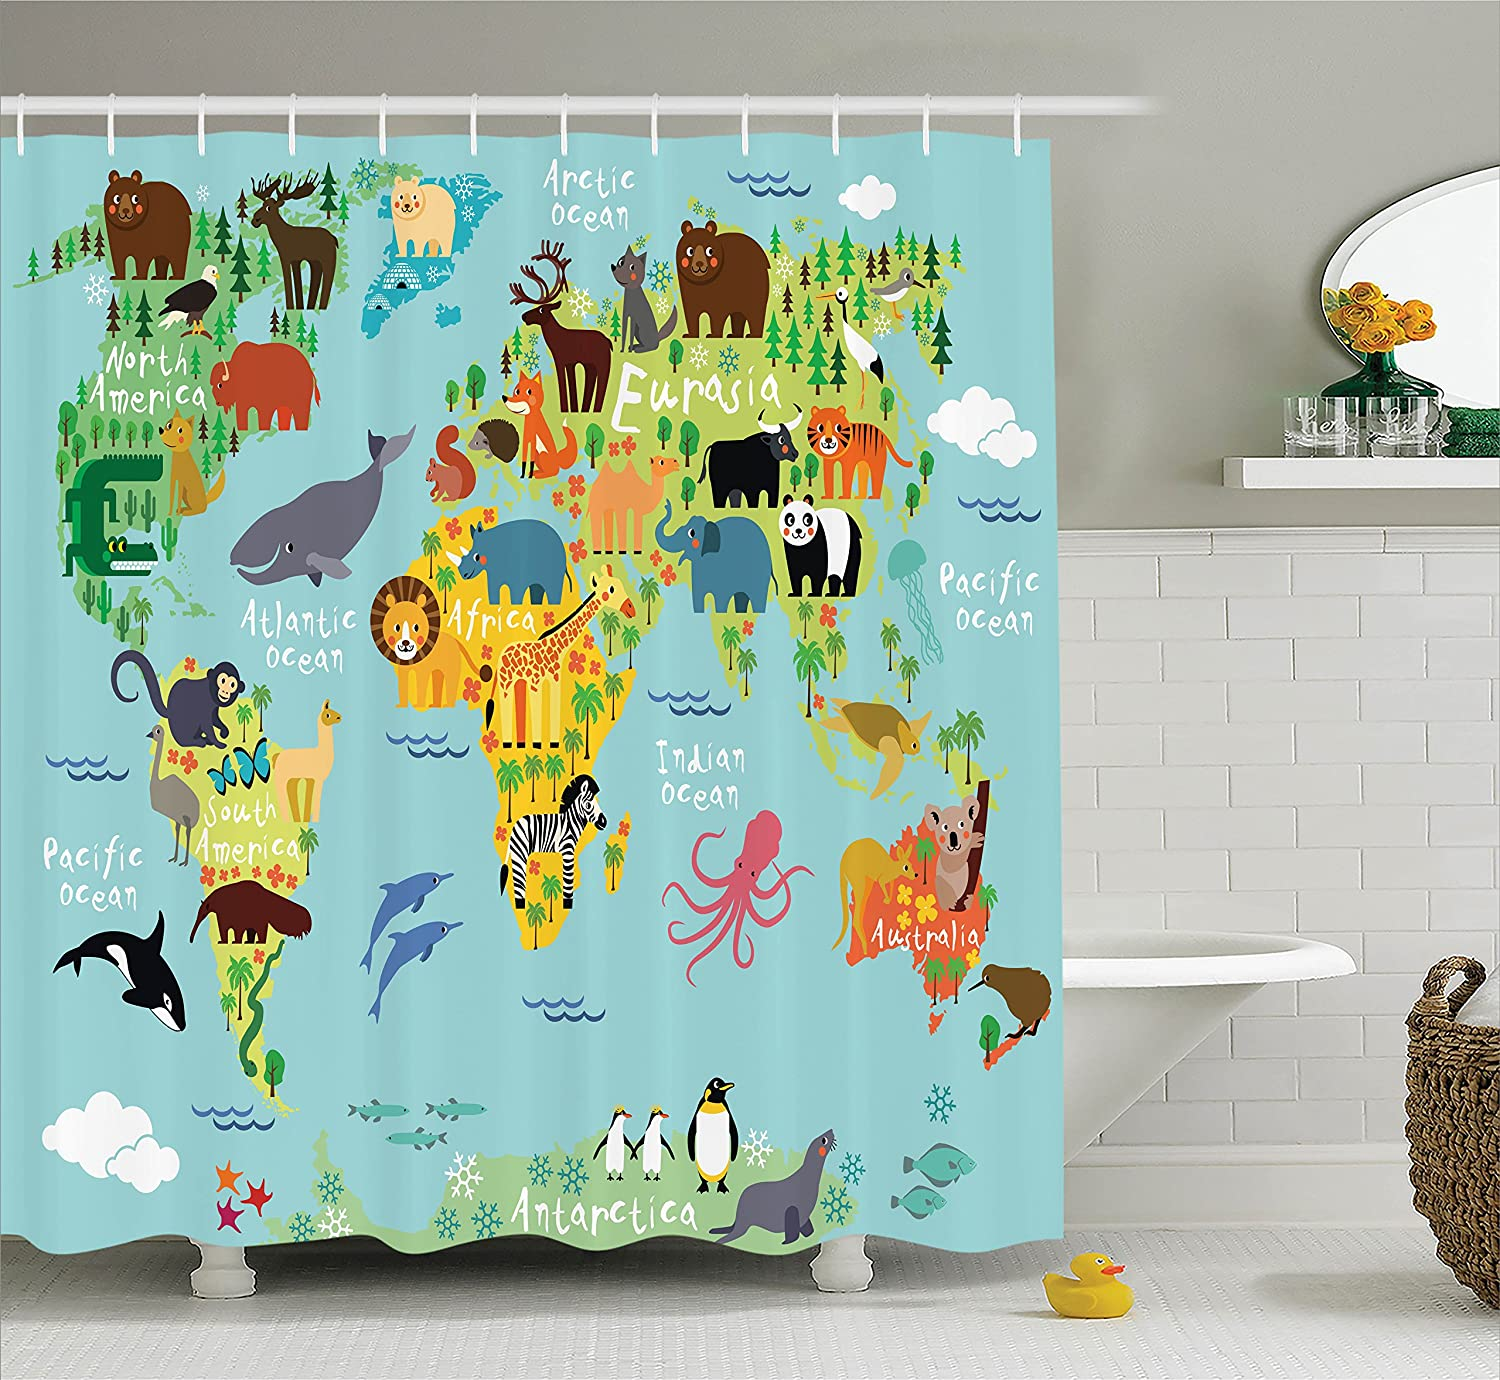 Amazon Com Wanderlust Shower Curtain Decor By Ambesonne Animal Map Of The World For Children And Kids Cartoon Mountains Forests Image Polyester Fabric